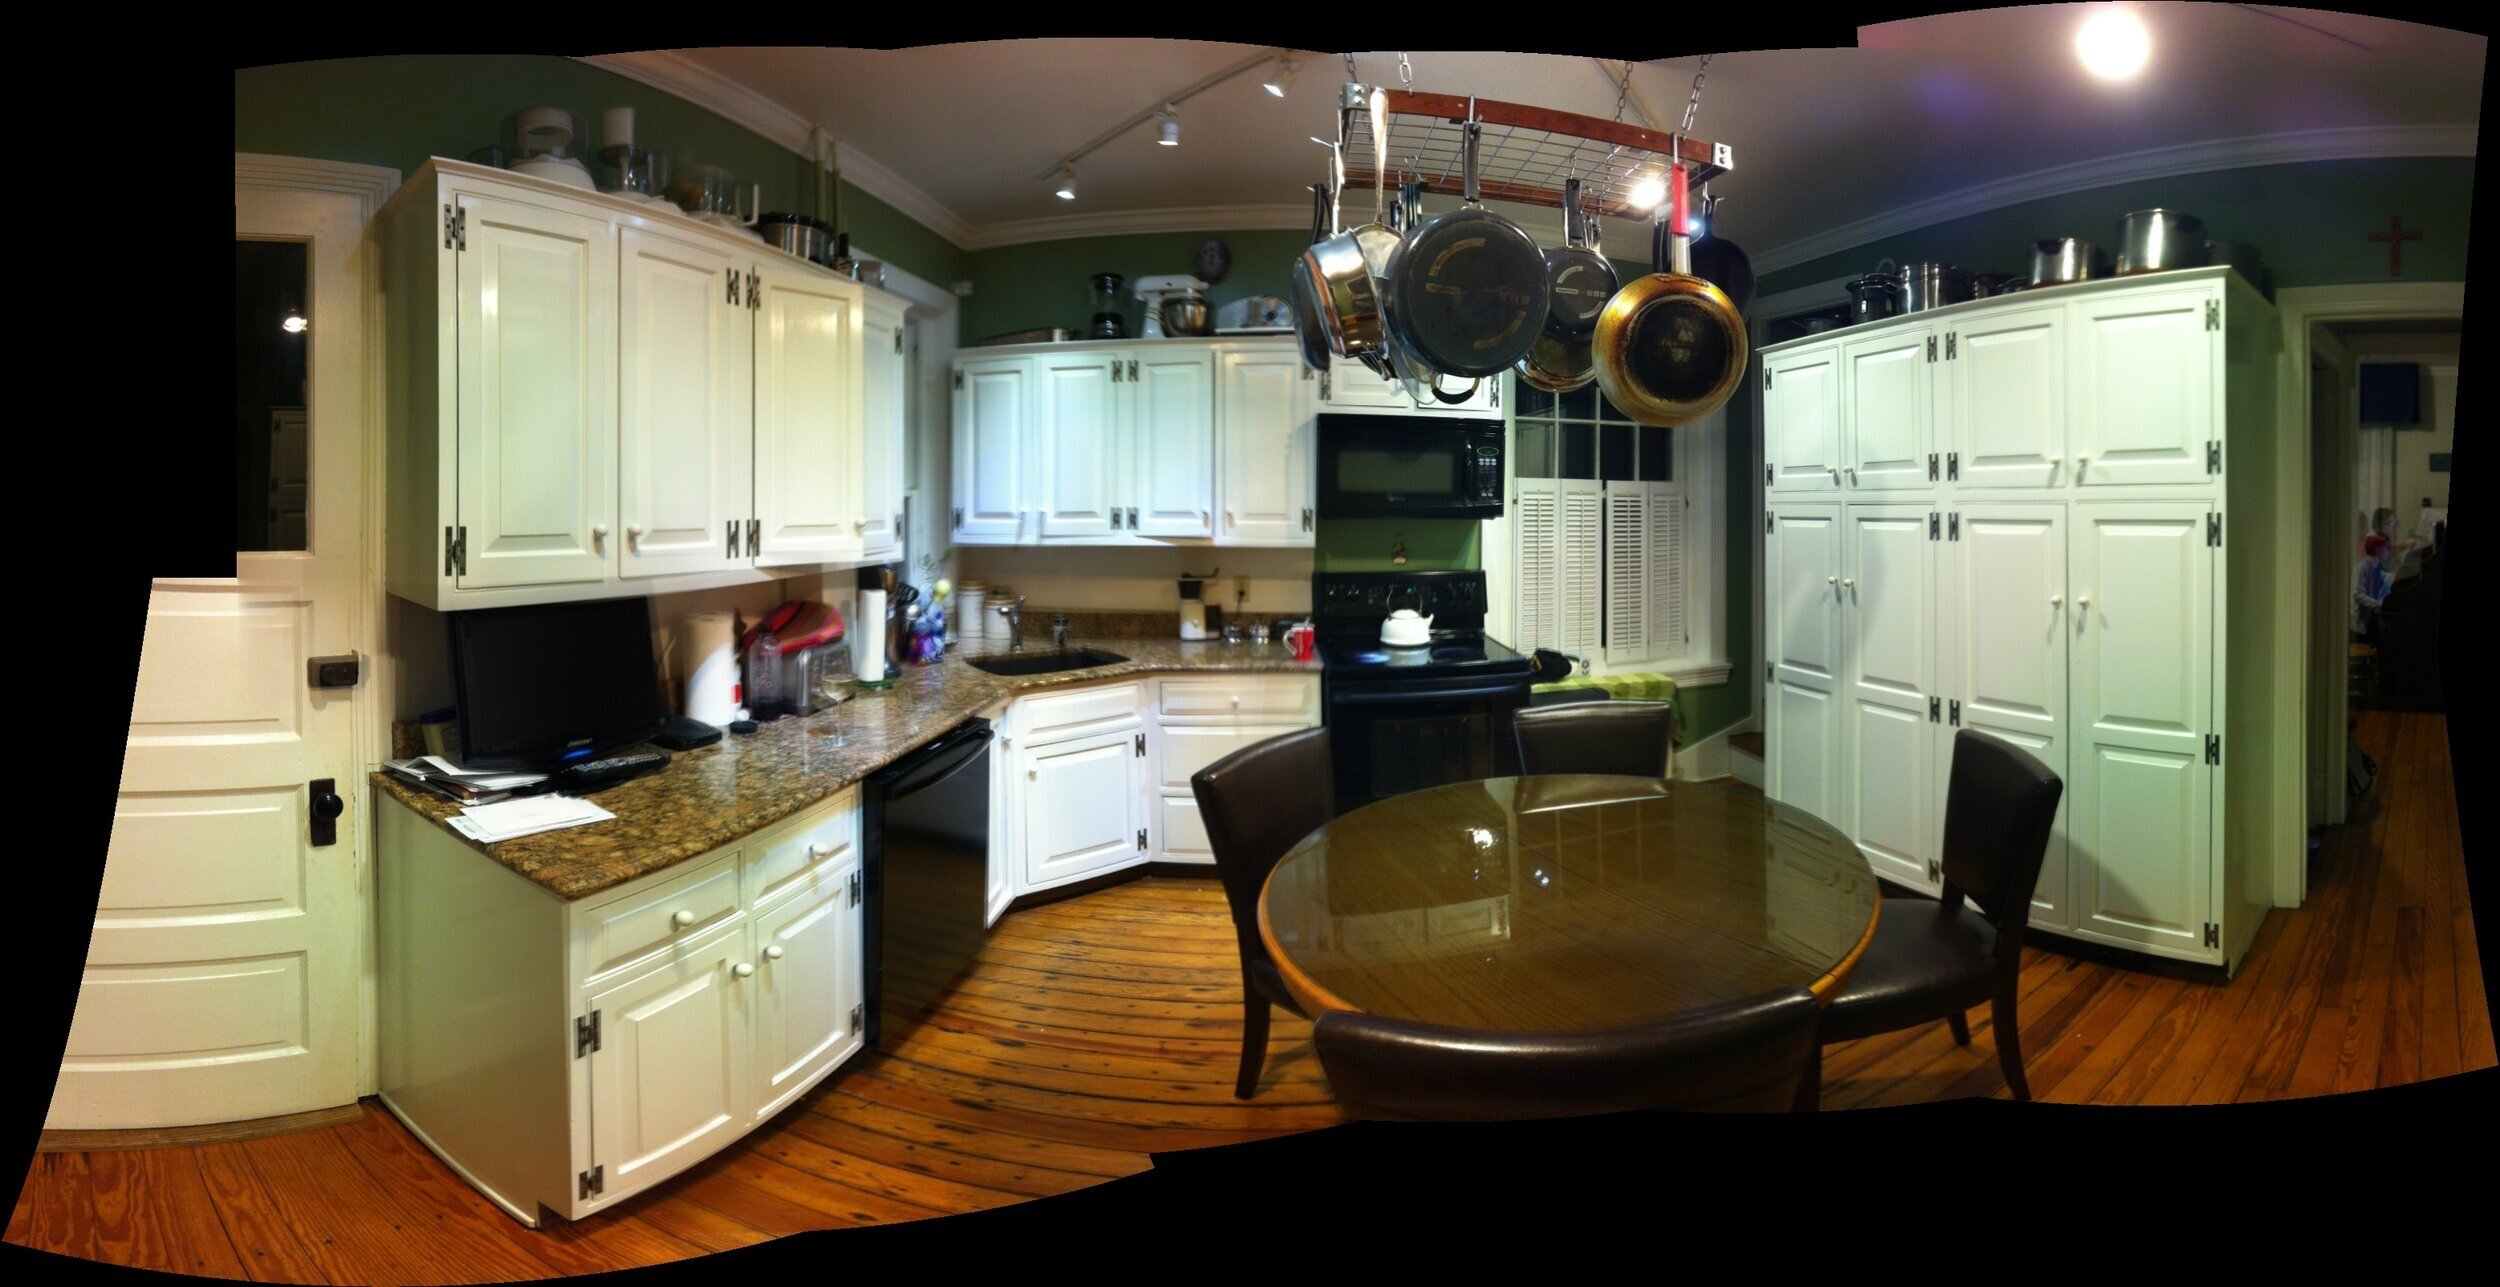 Here is a panorama of the original kitchen. The electric range was down to just one and a half burners! We recycled these cabinets by putting them in the new laundry room on the second floor.